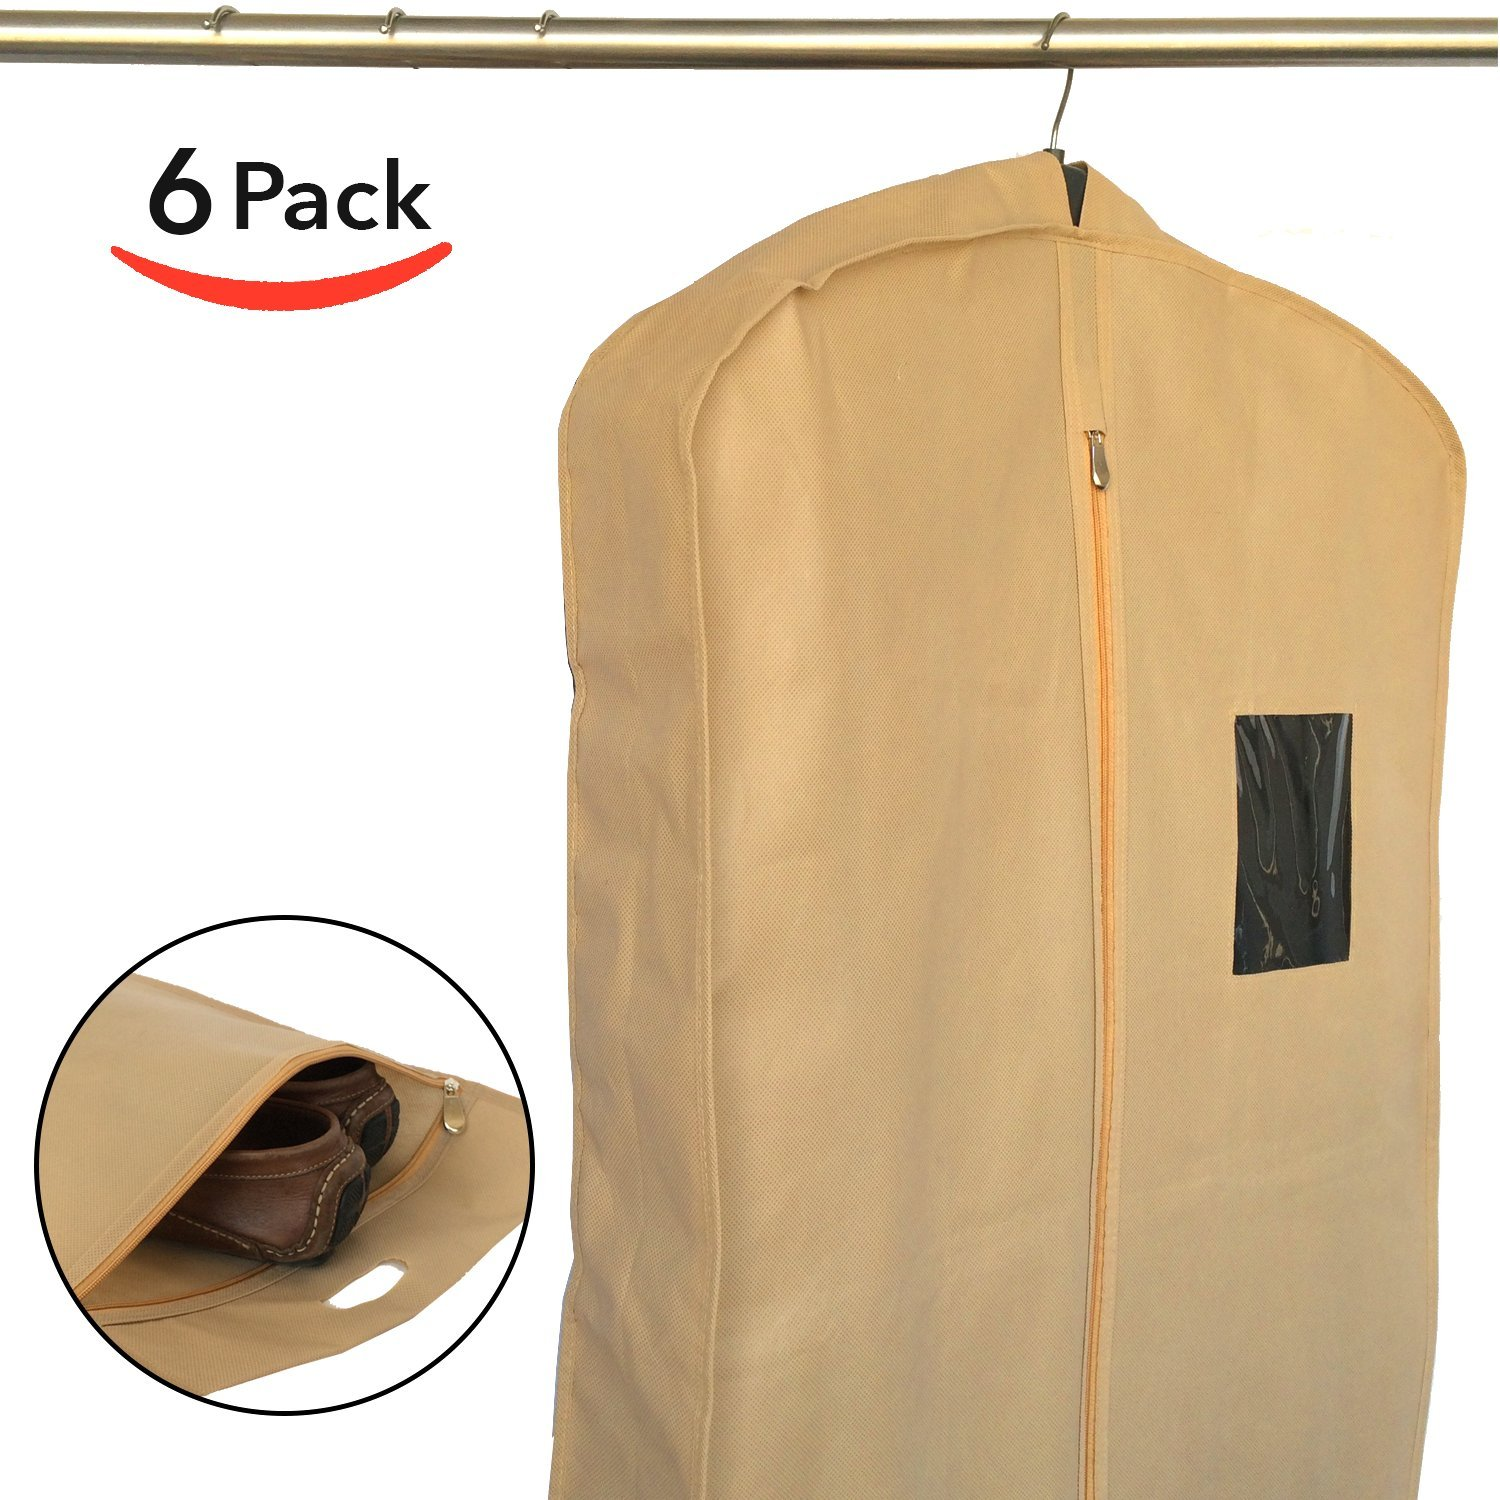 Set of 6 Breathable Garment Bags for Clothes Storage, Travel - Suit Bag Cover for Men by Home Haven by Home Haven